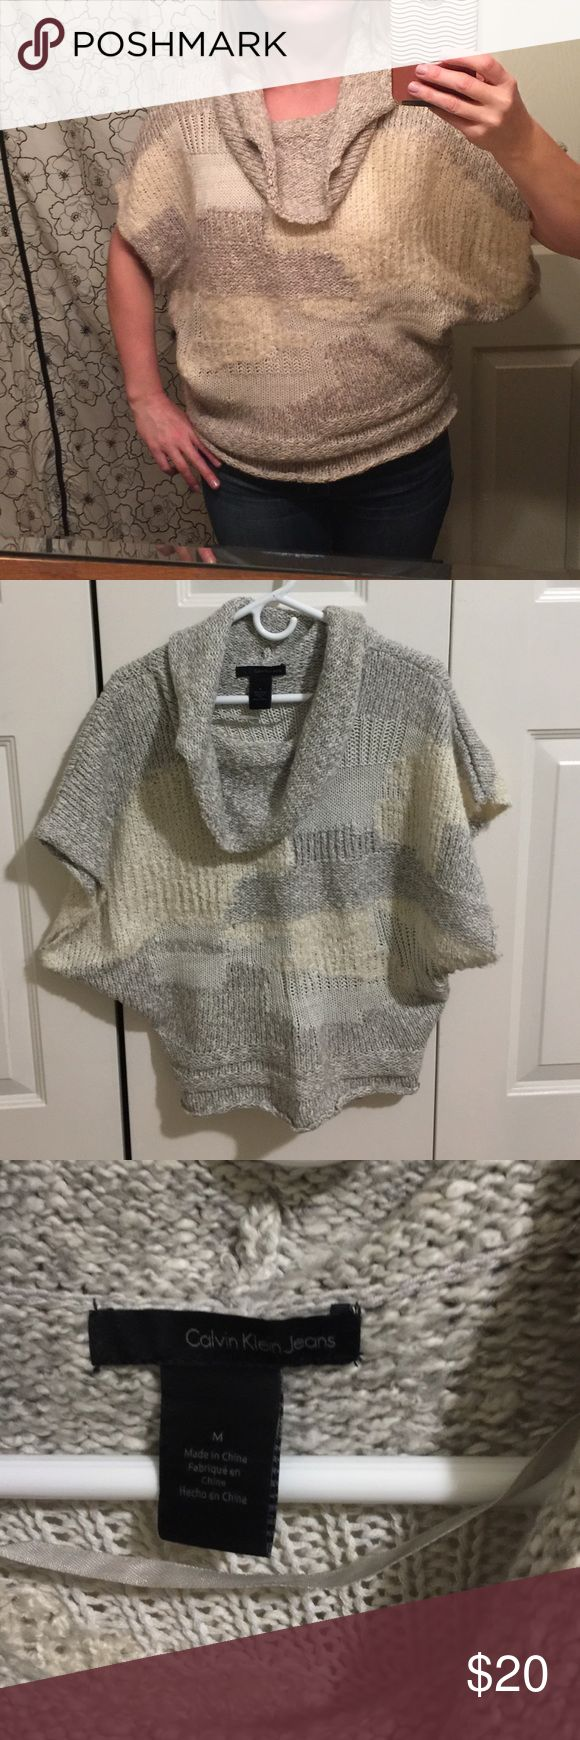 Calvin Klein sweater poncho Excellent condition Calvin Klein short sleeve sweater poncho! Calvin Klein Jeans Sweaters Shrugs & Ponchos